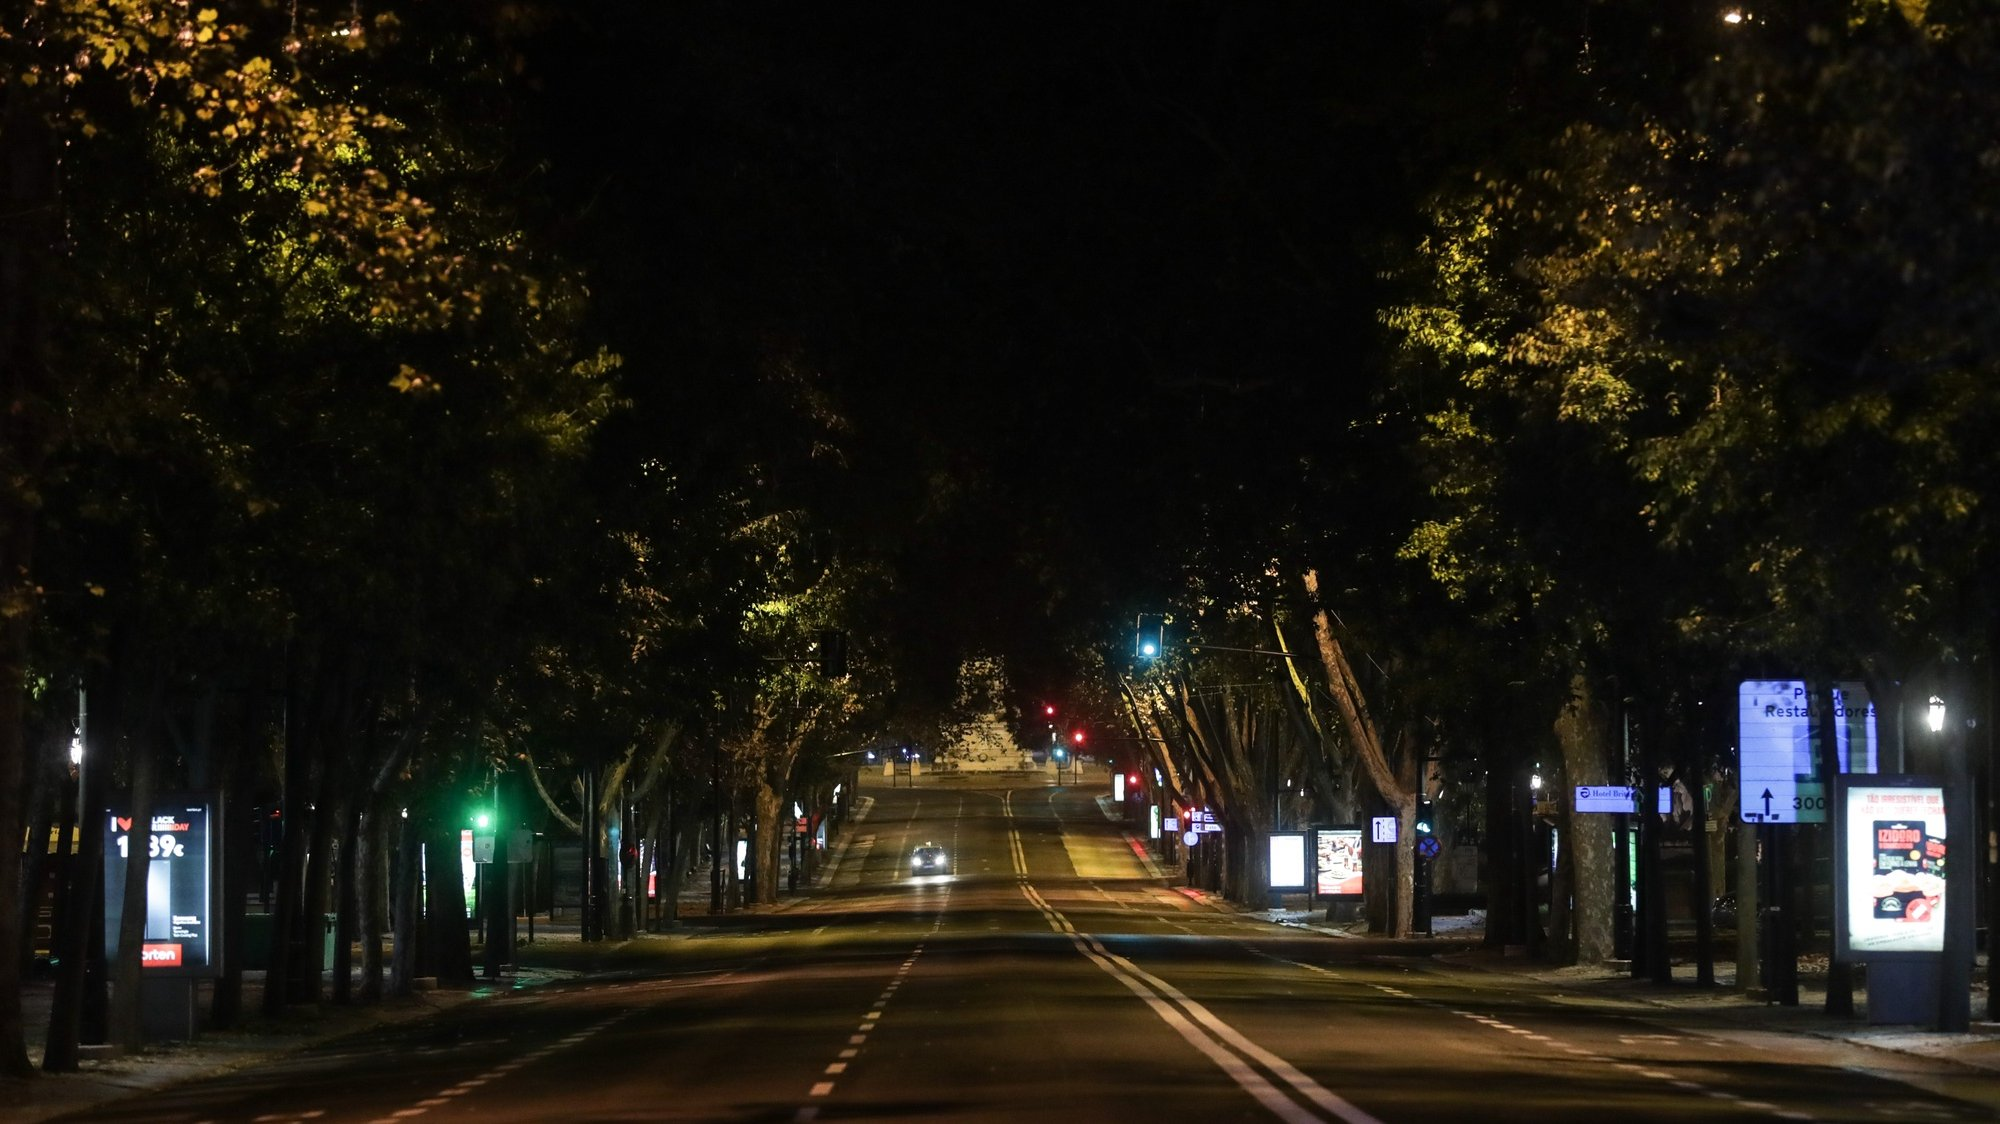 The Avenue of Liberty in Lisbon dowtown during the curfew of the state of emergency as part of the containment measures of covid-19, Lisbon, Portugal, 9 November 2020. The President of the Republic, Marcelo Rebelo de Sousa, decreed the state of emergency in Portugal, for 15 days from today, to allow measures to contain the covid-19. TIAGO PETINGA/LUSA